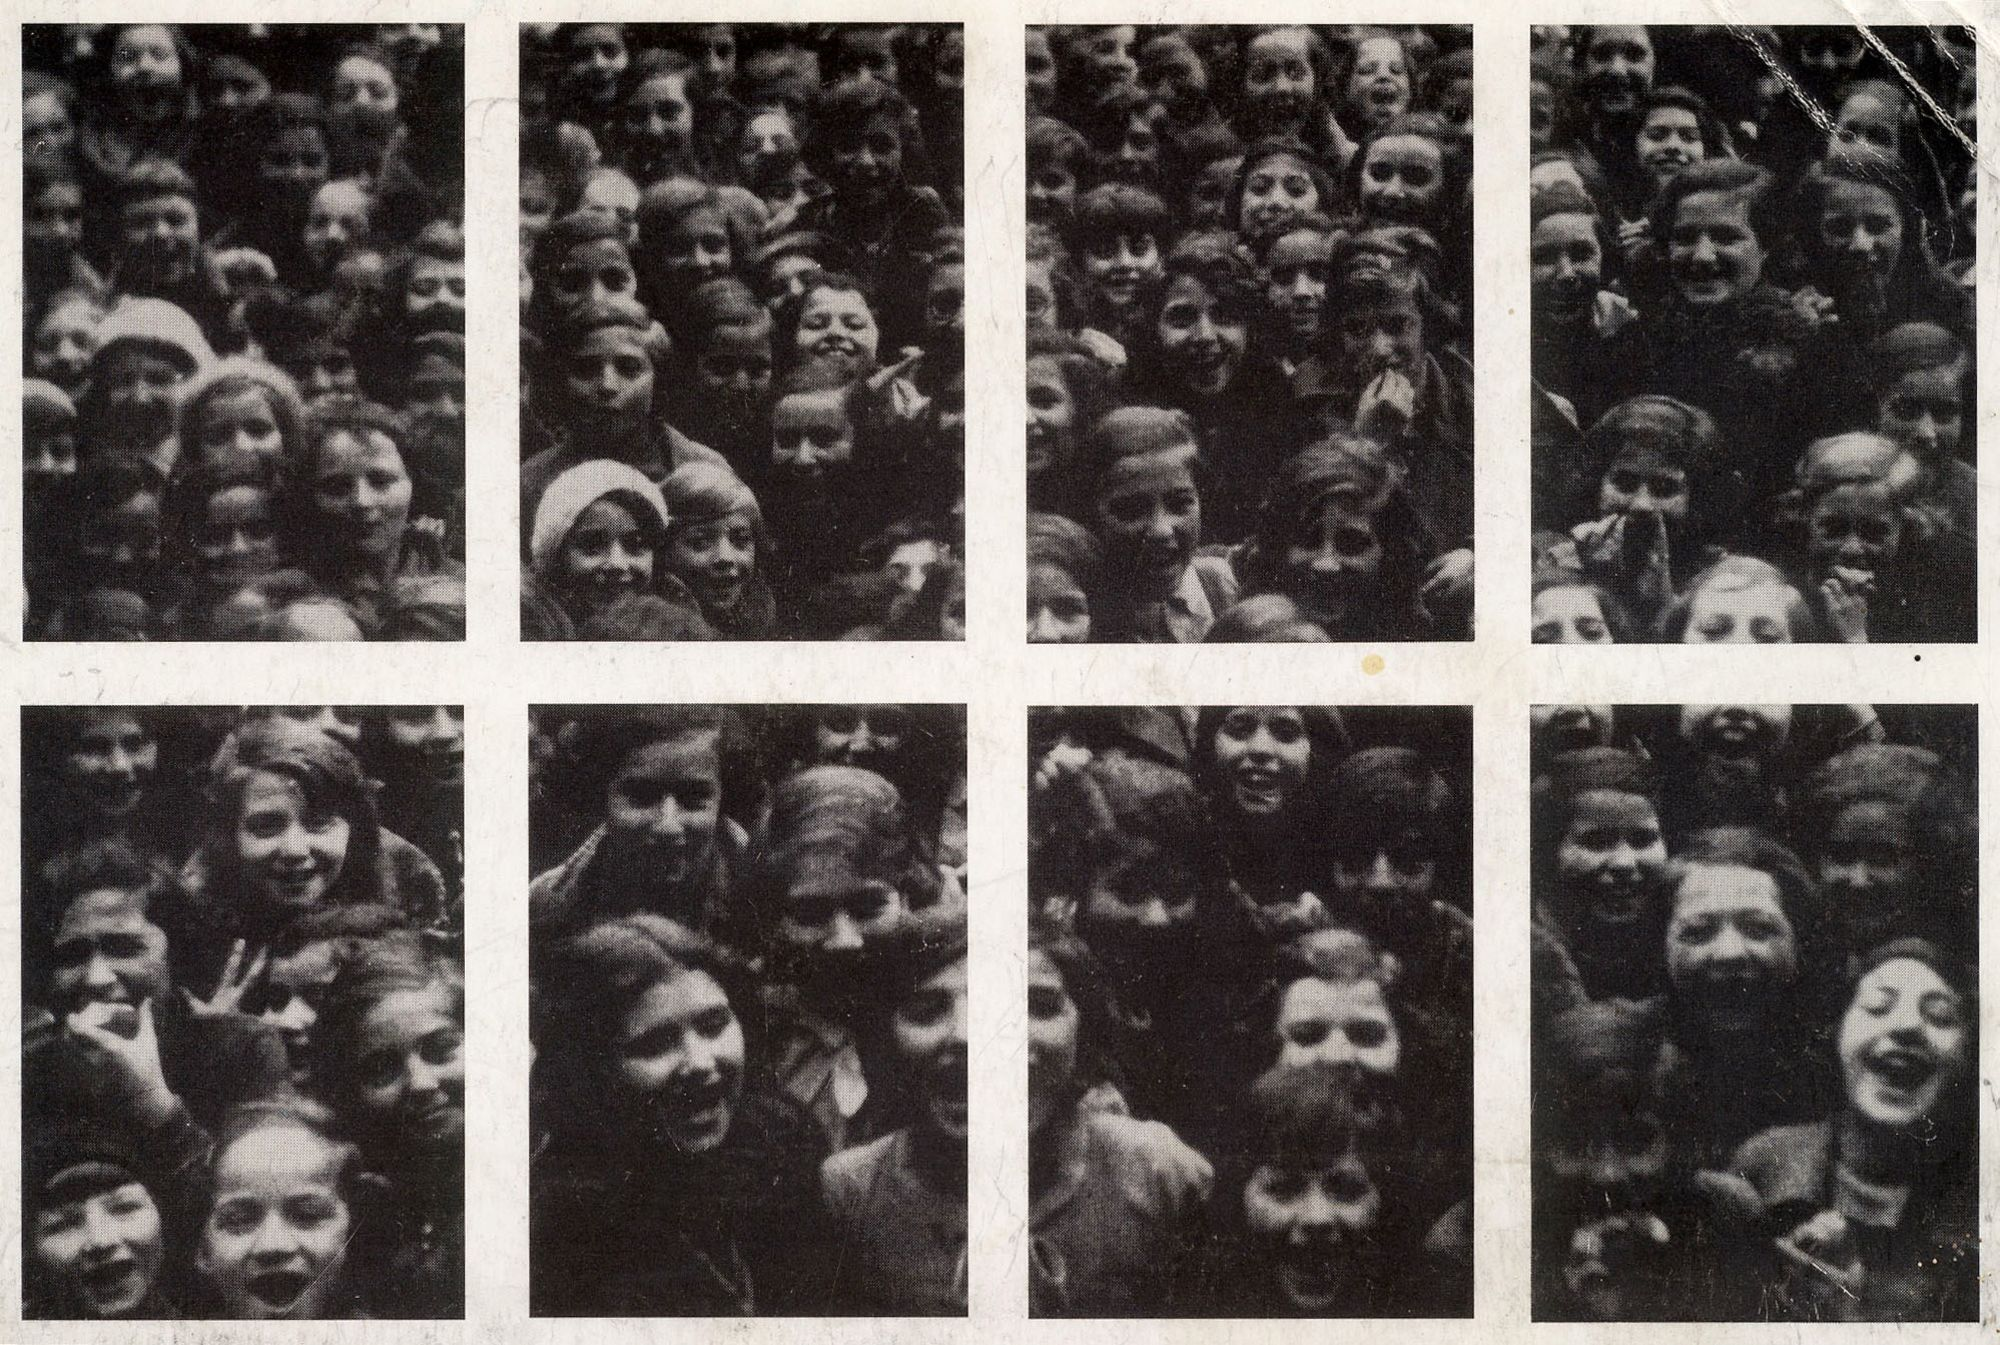 Lot 12 Christian Boltanski, The School of the Grosse Hamburgerstrasse, Berlin 1939 – Ticket price: 1.000 €